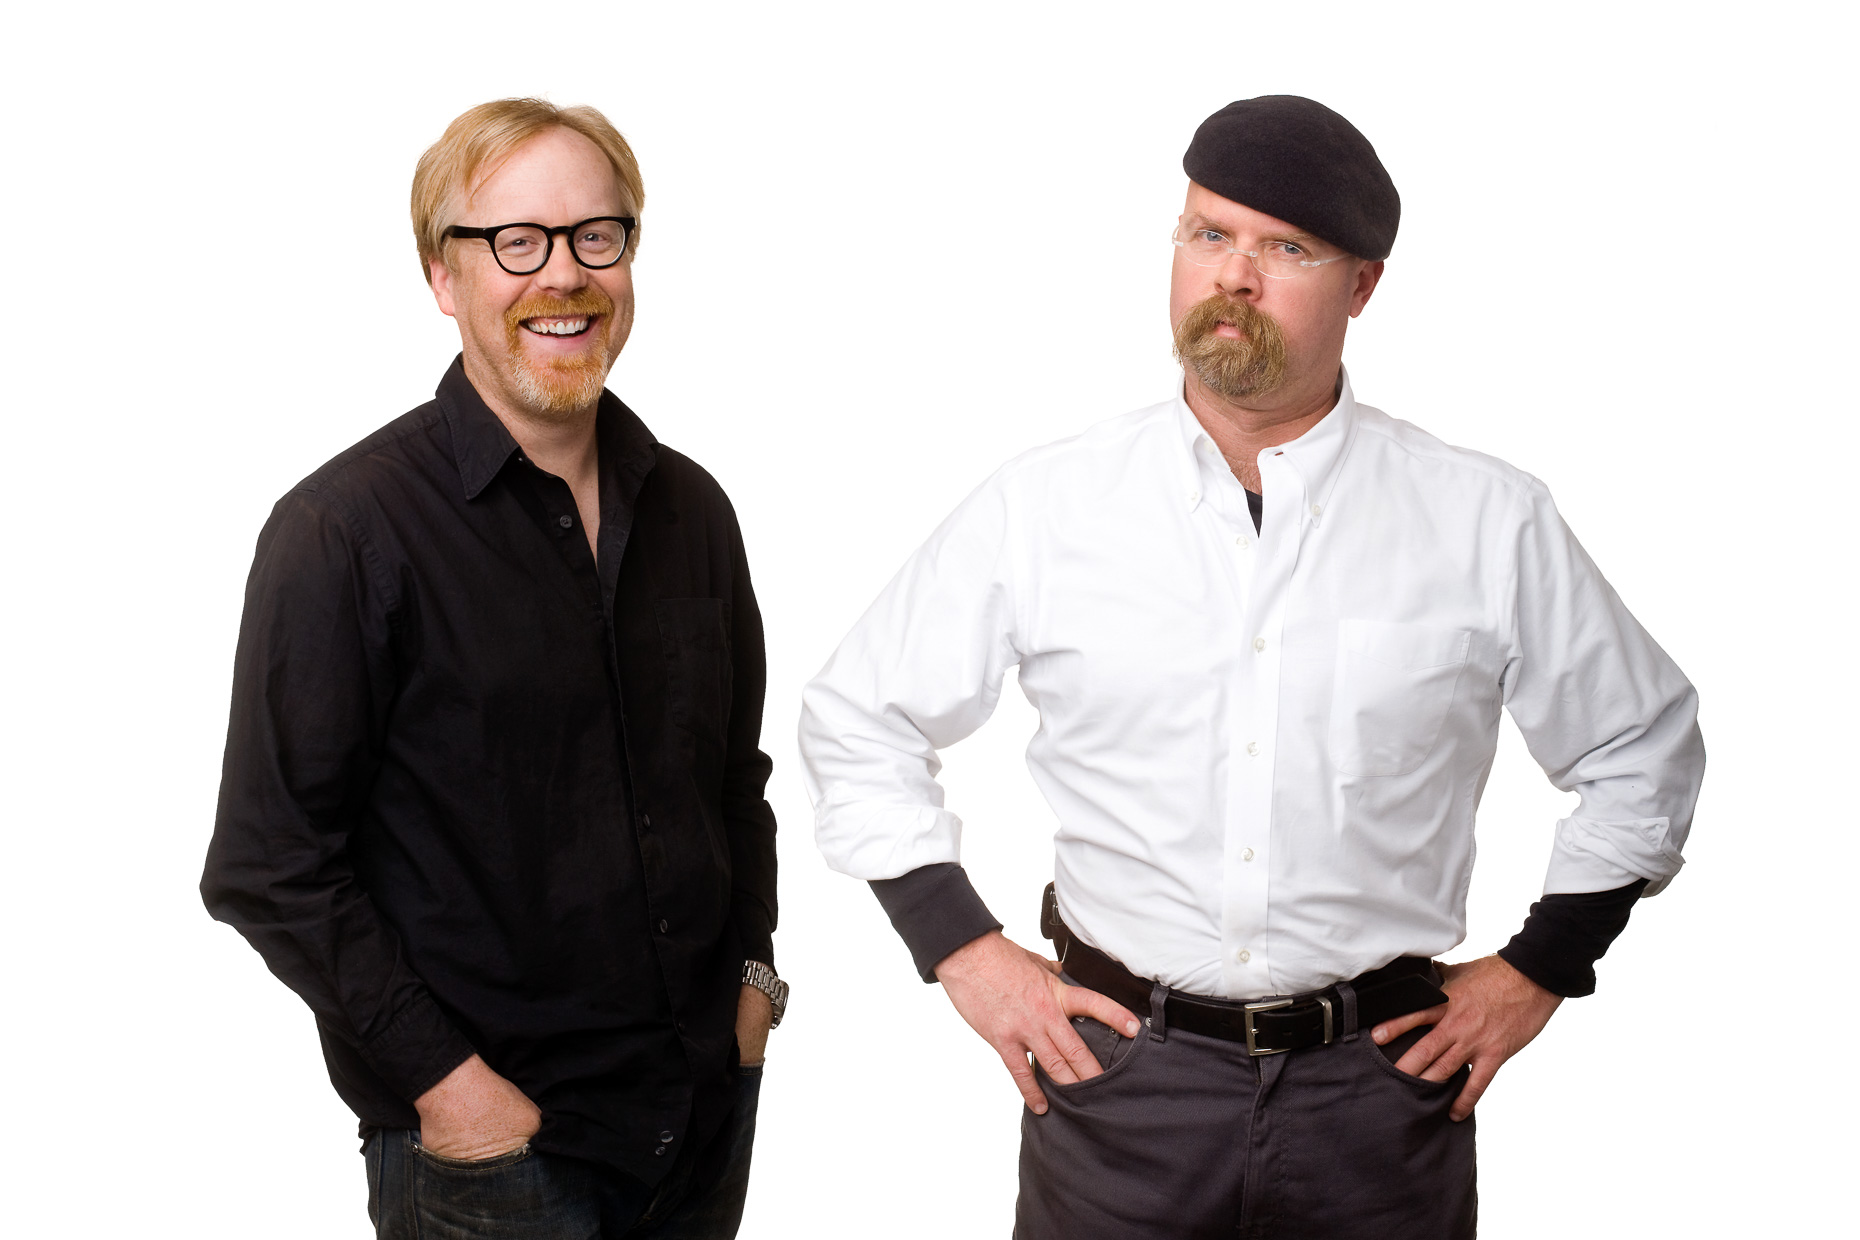 Mythbusters portrait by curtis myers